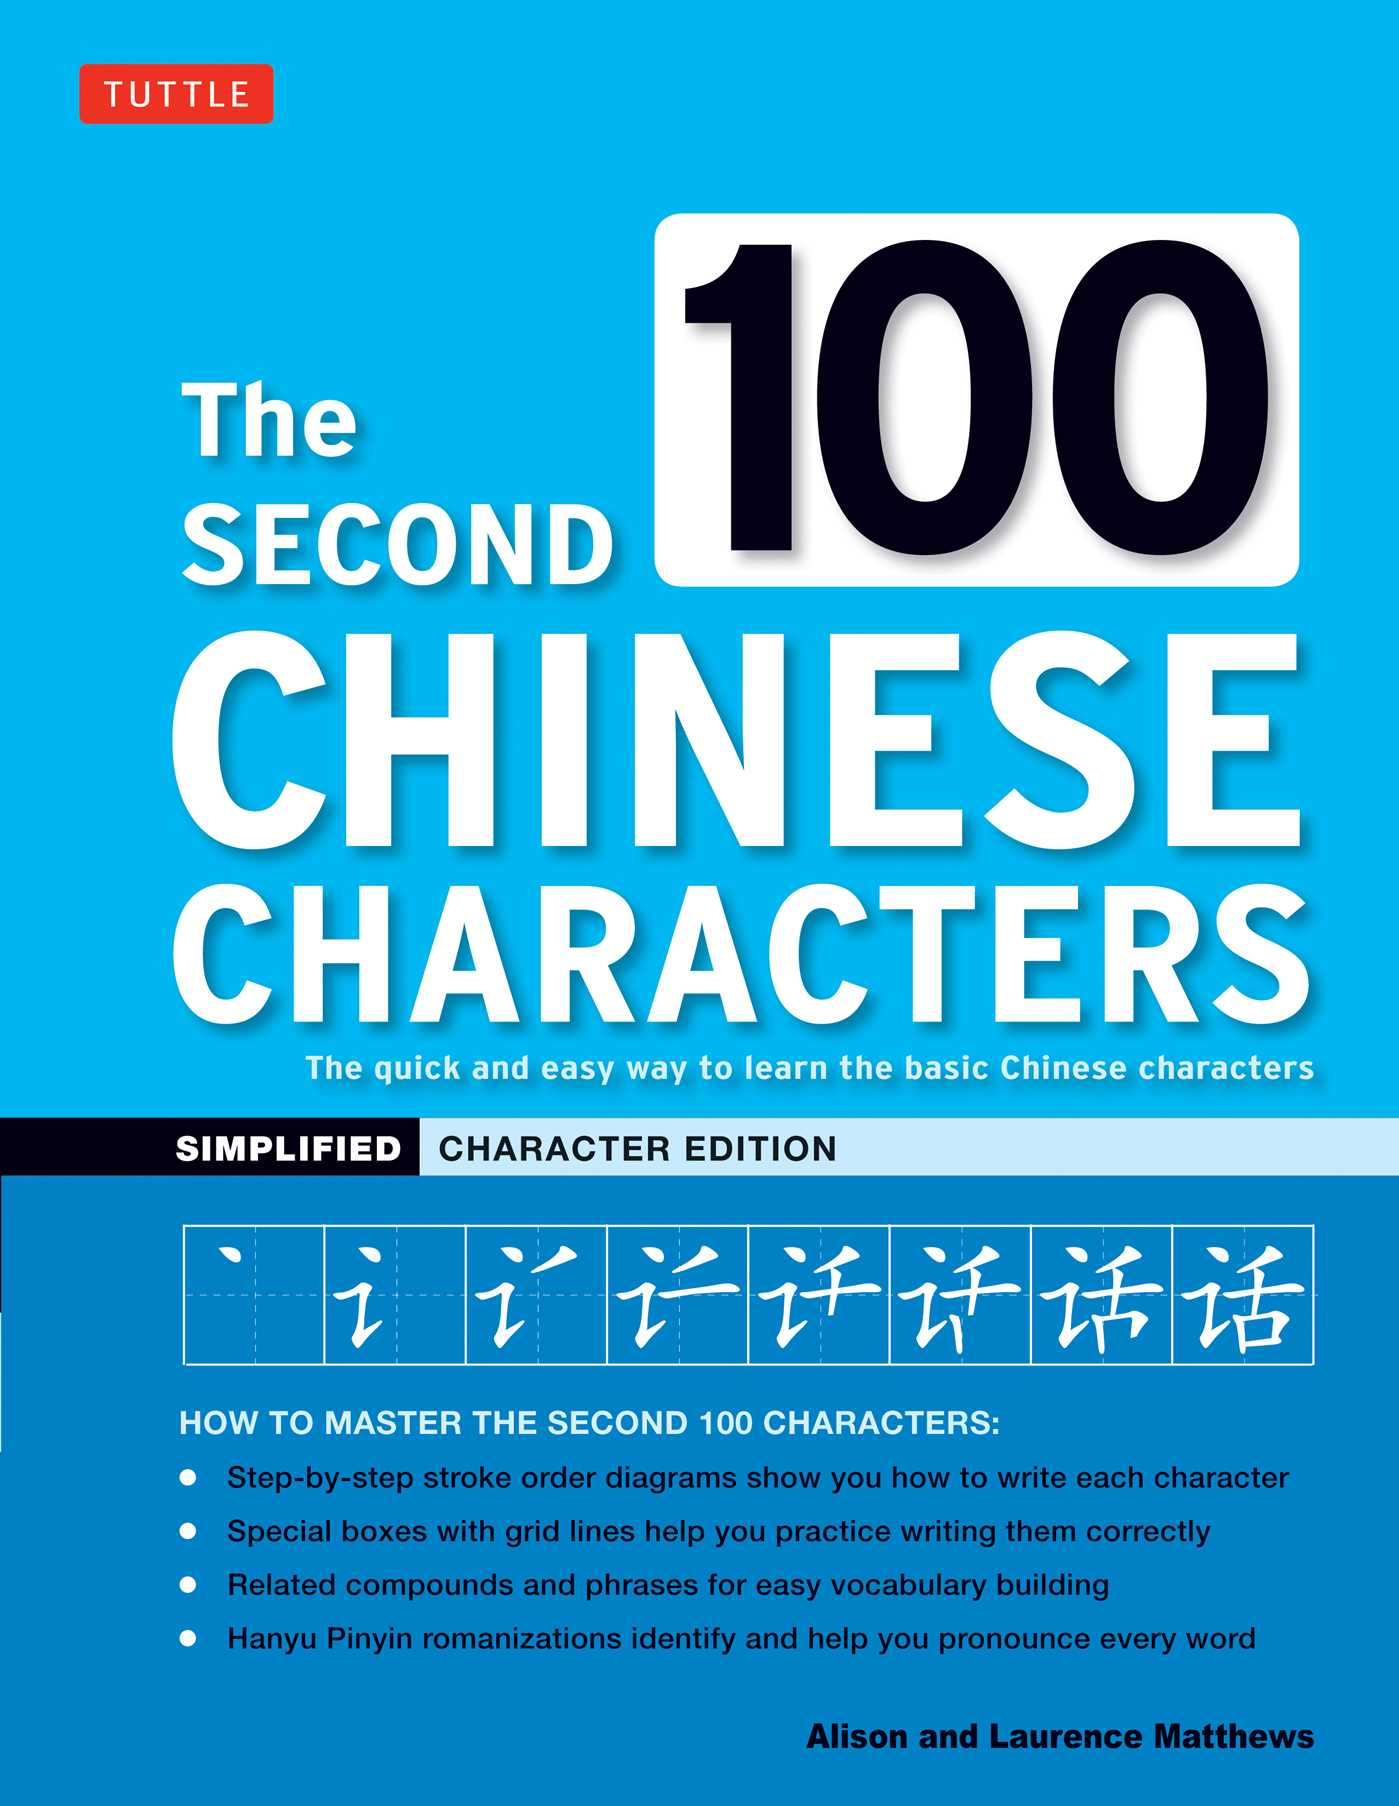 The second 100 chinese characters simplified character edition 9780804849371 hr